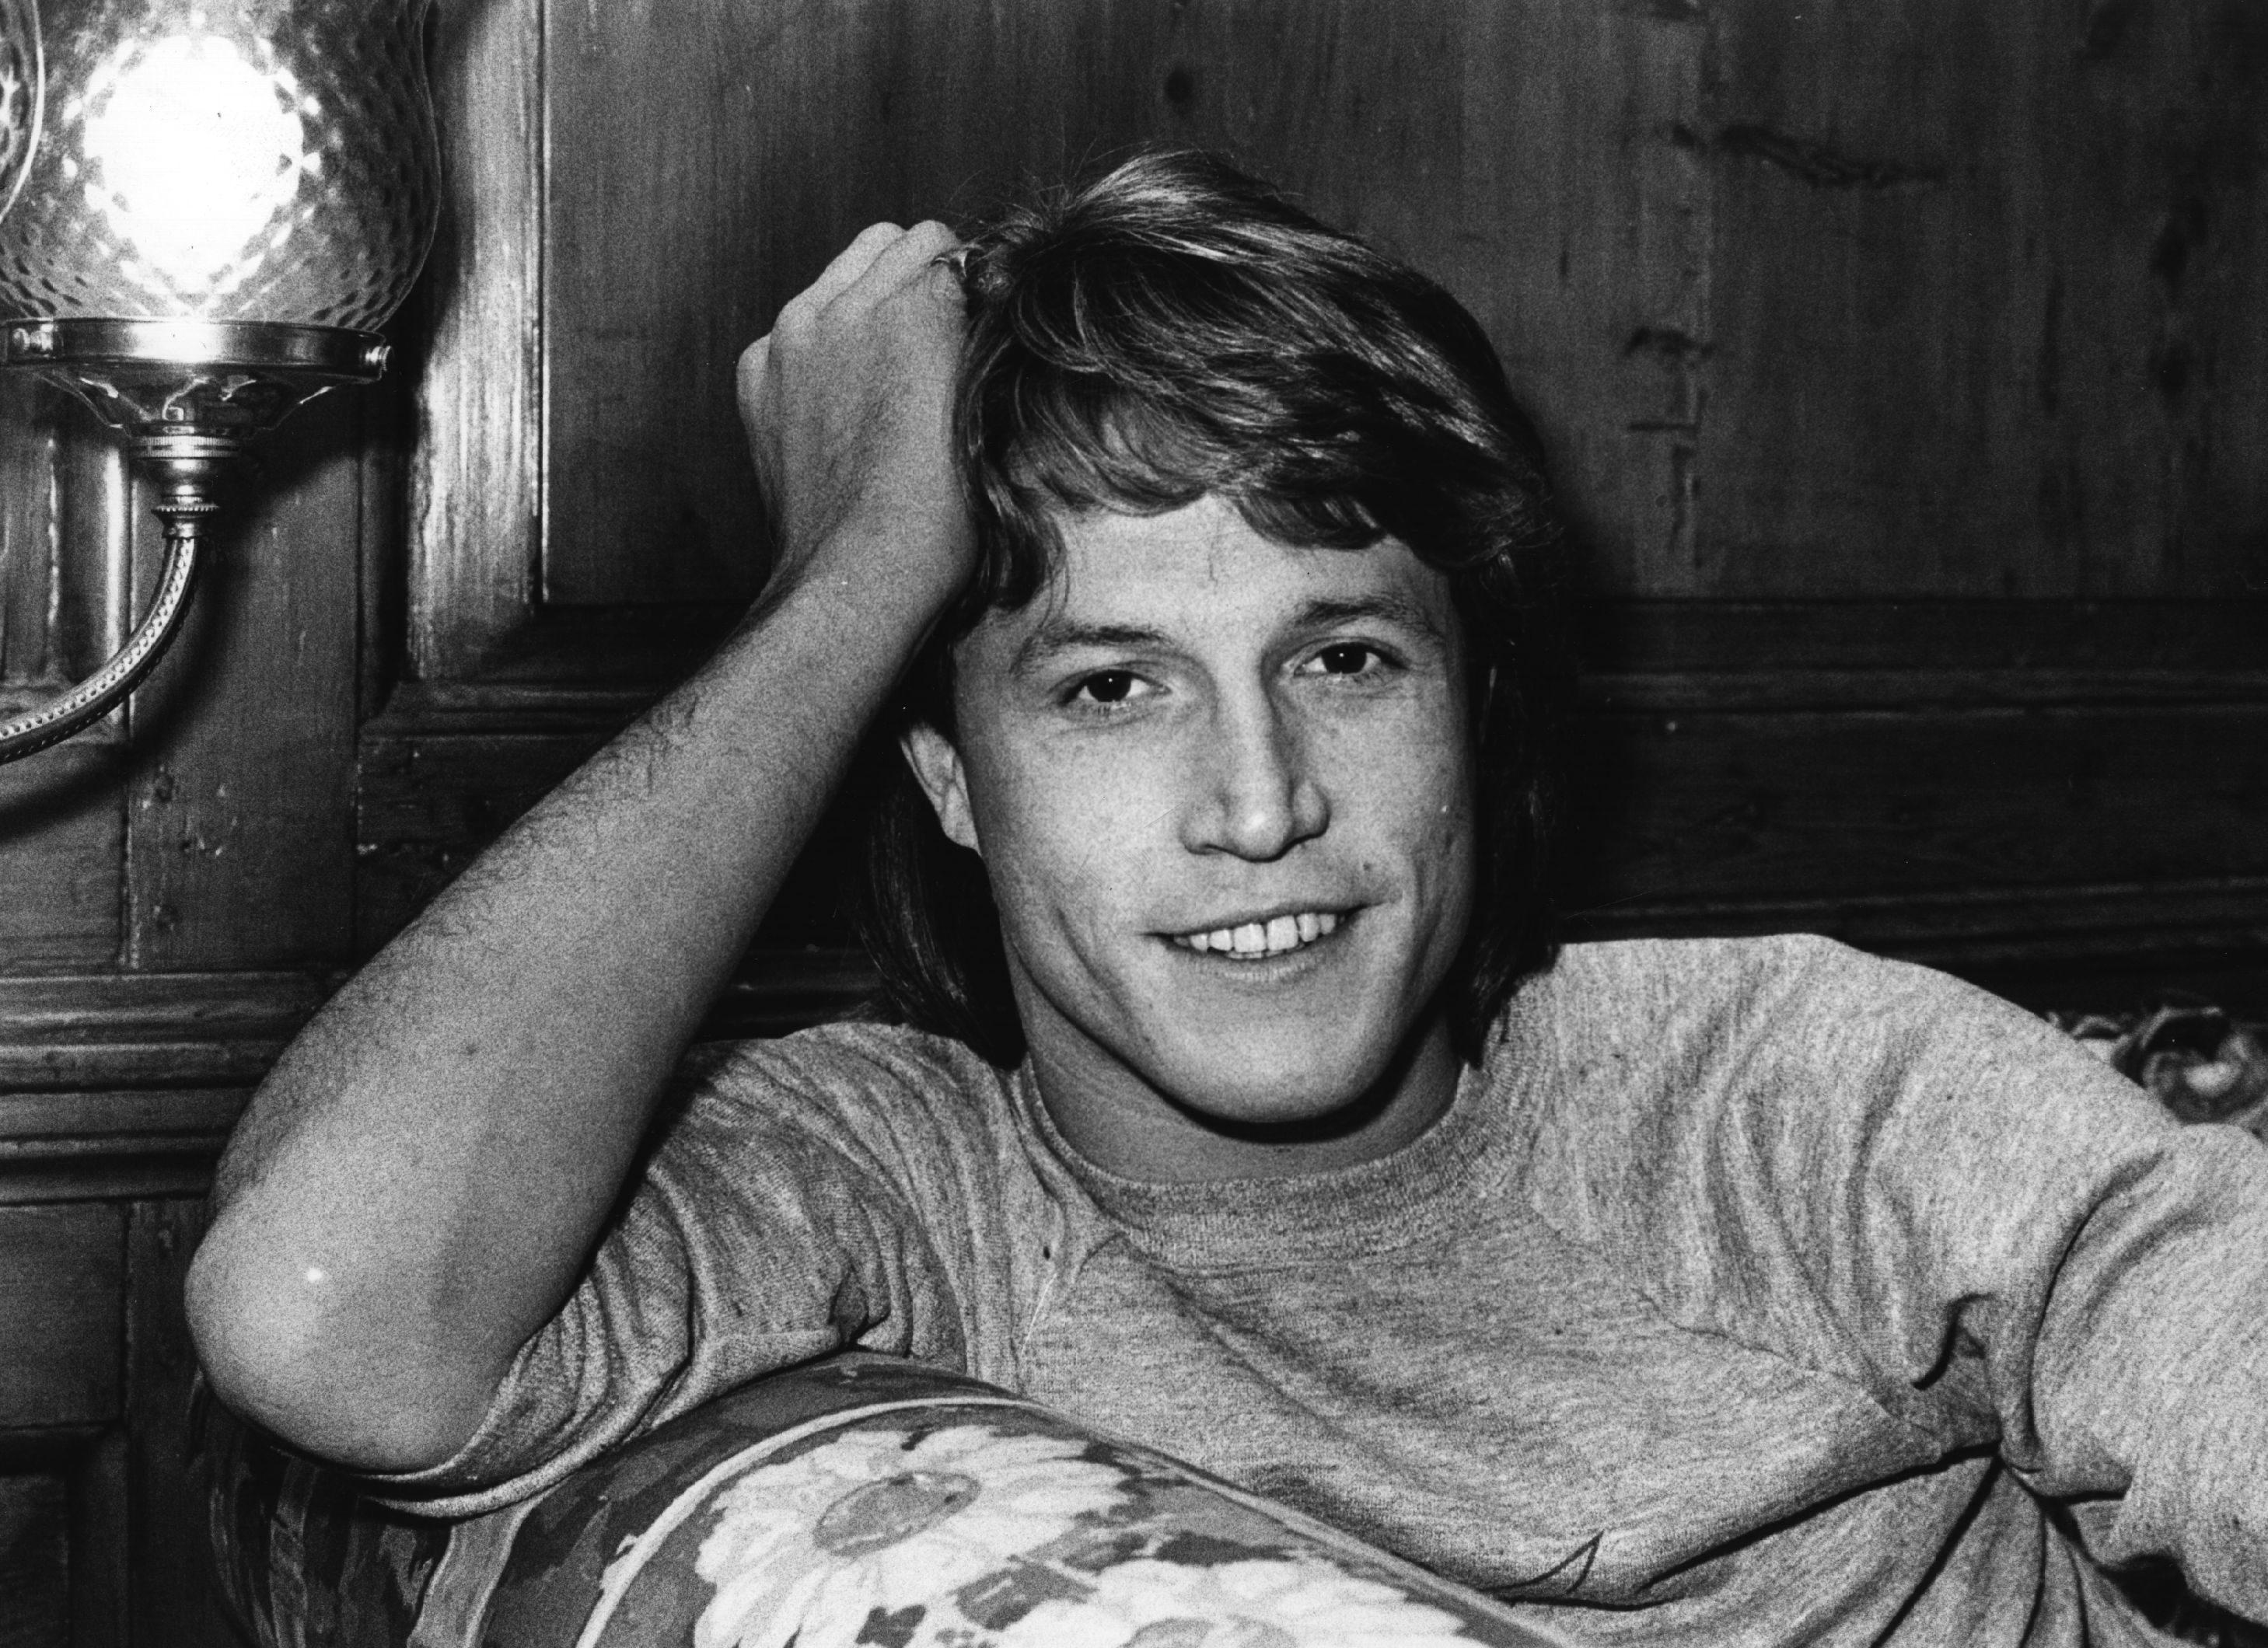 Andy Gibb, 27. Februar 1980. | Quelle: Getty Images